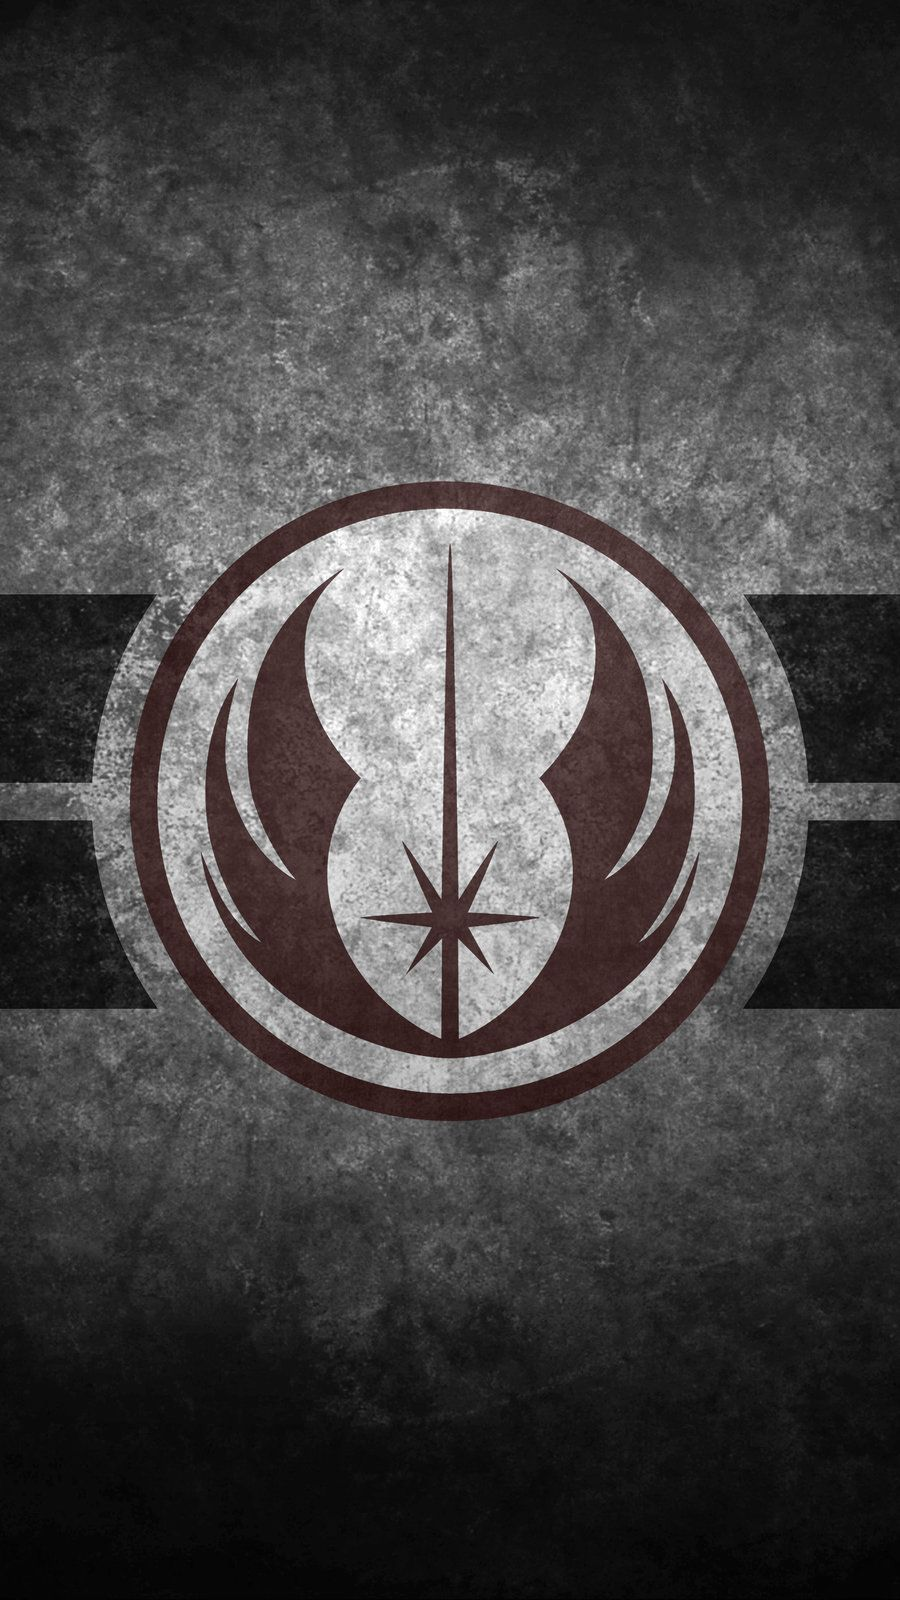 Jedi Order Symbol Cellphone Wallpaper Star Wars Symbols Star Wars Wallpaper Star Wars The Old